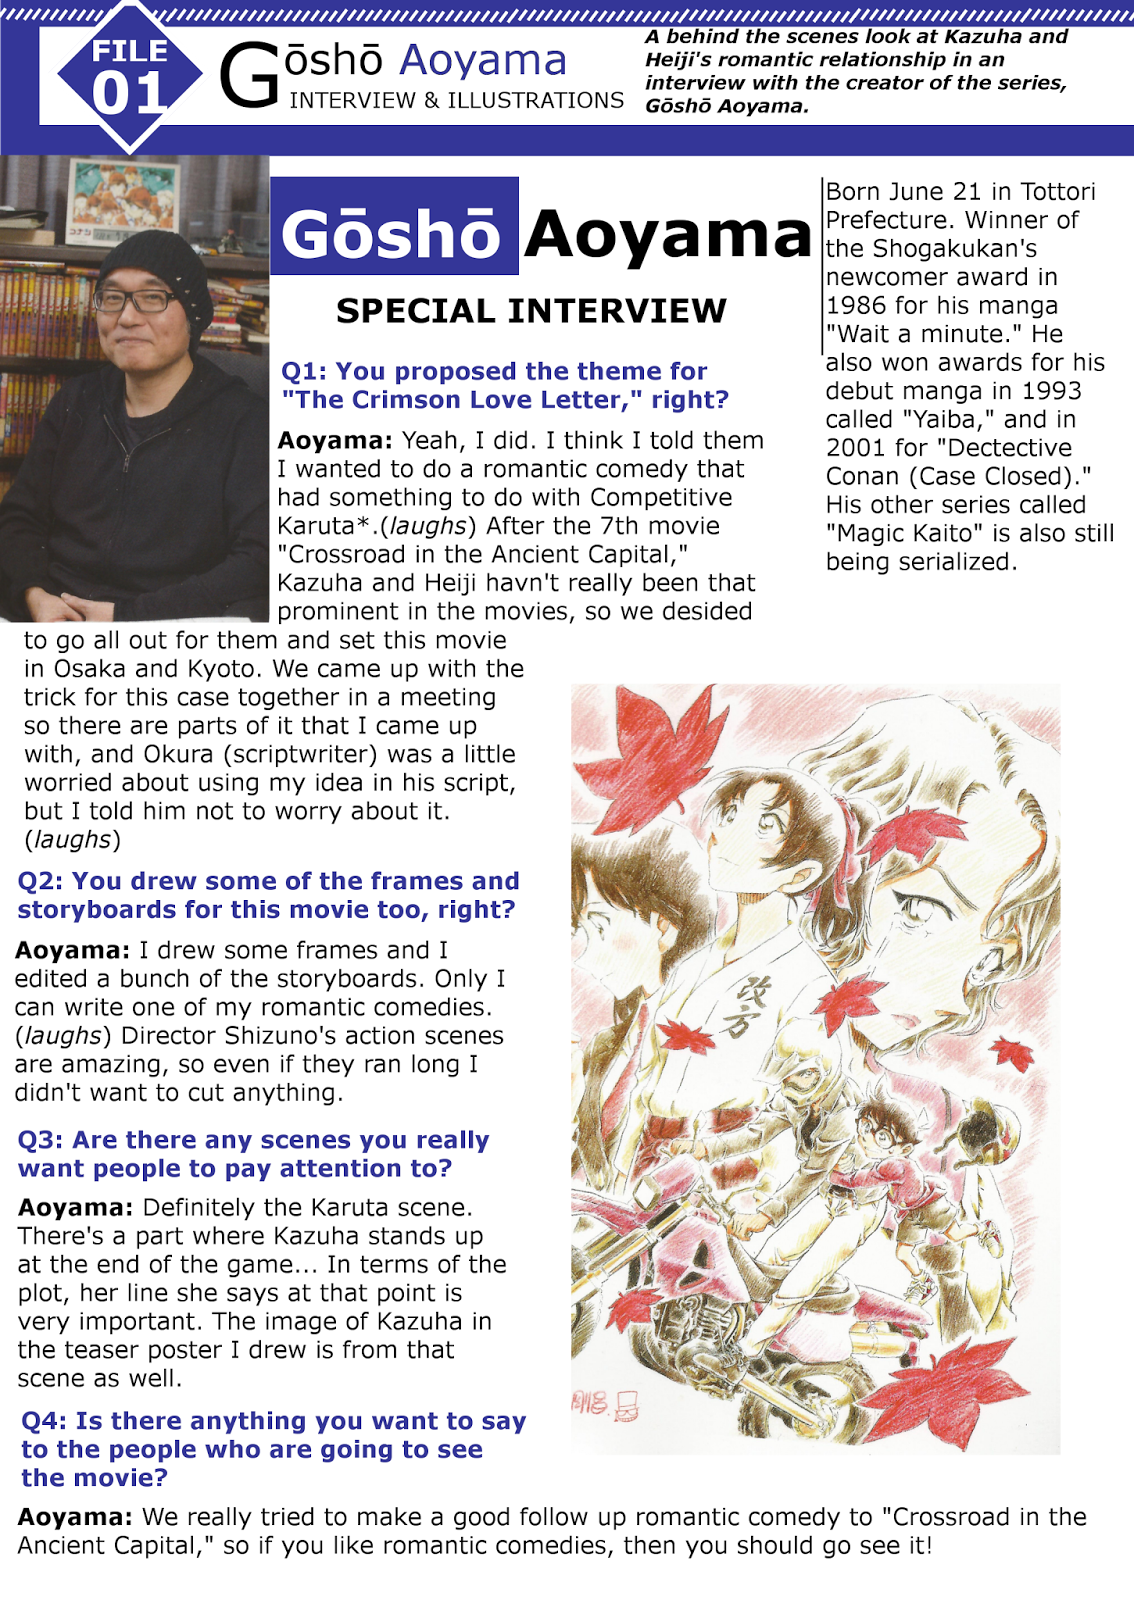 Detective Conan  Aoyama Gosho Special Interview Part  The Crimson